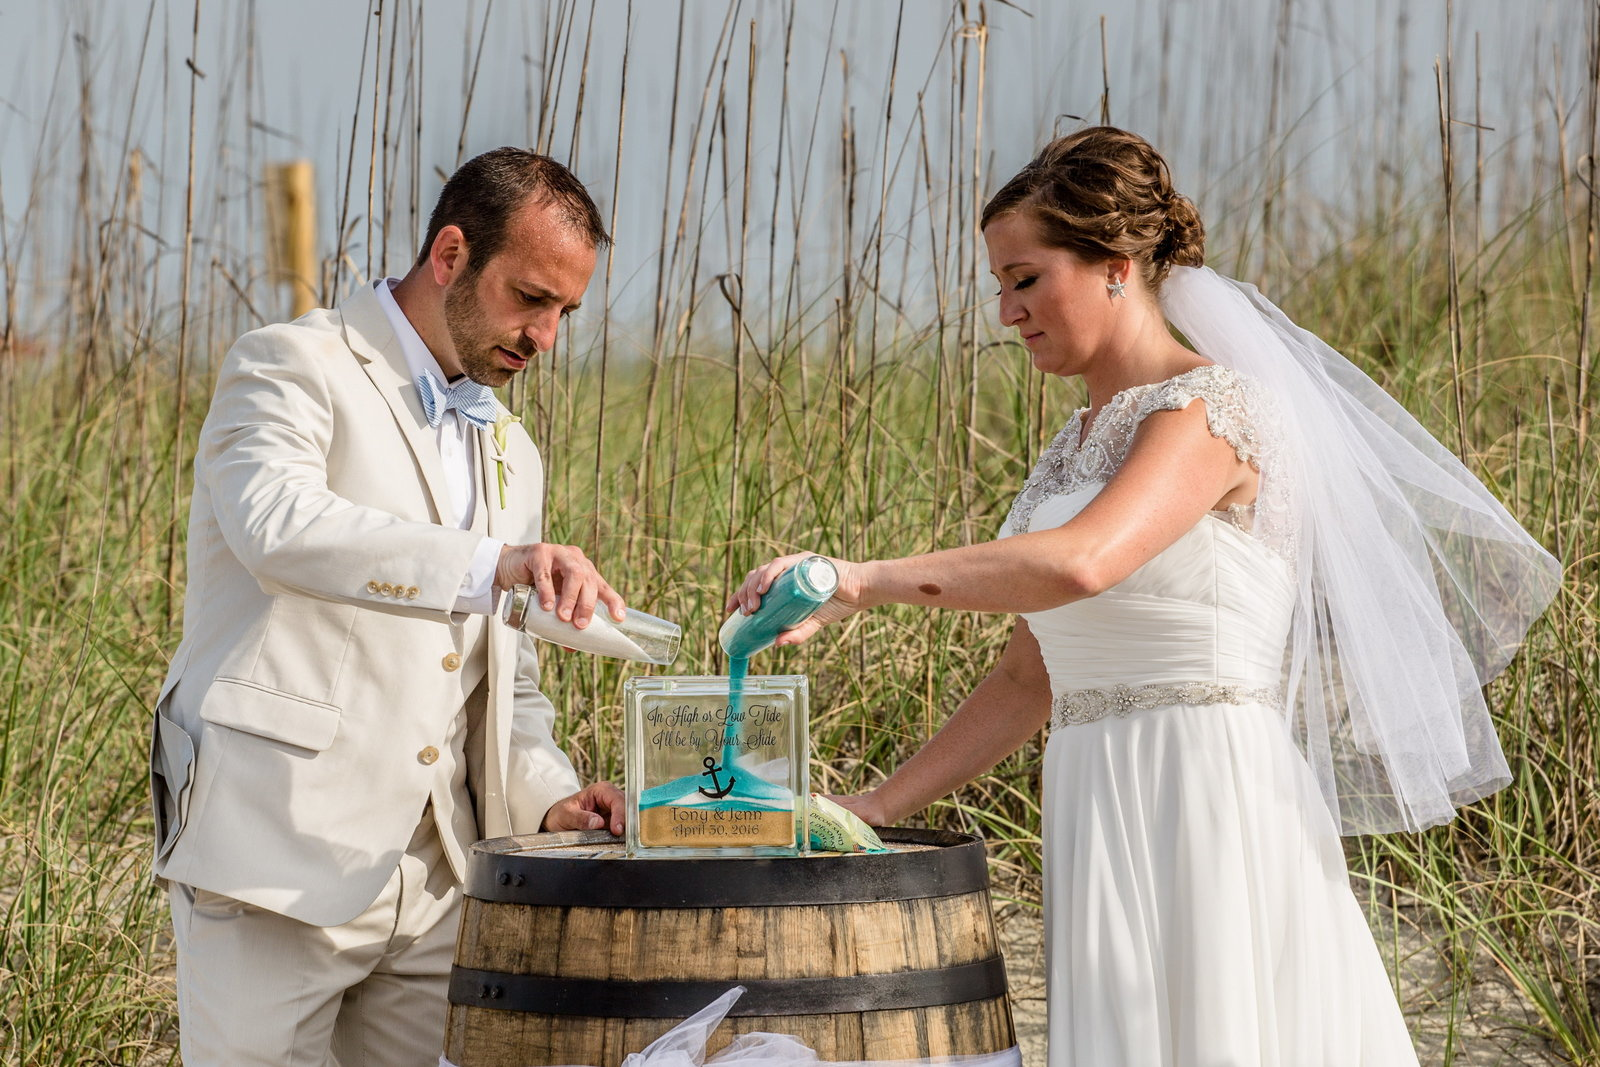 Tybee Island Wedding, Jenn + Tony, Bobbi Brinkman Photography